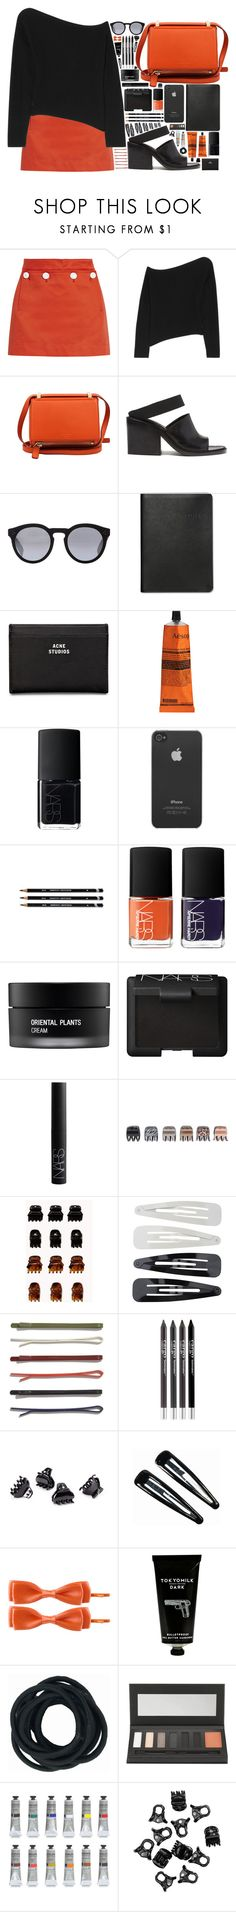 """""""Different Sense"""" by seoultotokyo ❤ liked on Polyvore featuring moda, Acne Studios, Alexander Wang, Givenchy, Helmut Lang, Illesteva, Graphic Image, Aesop, NARS Cosmetics y Incase"""